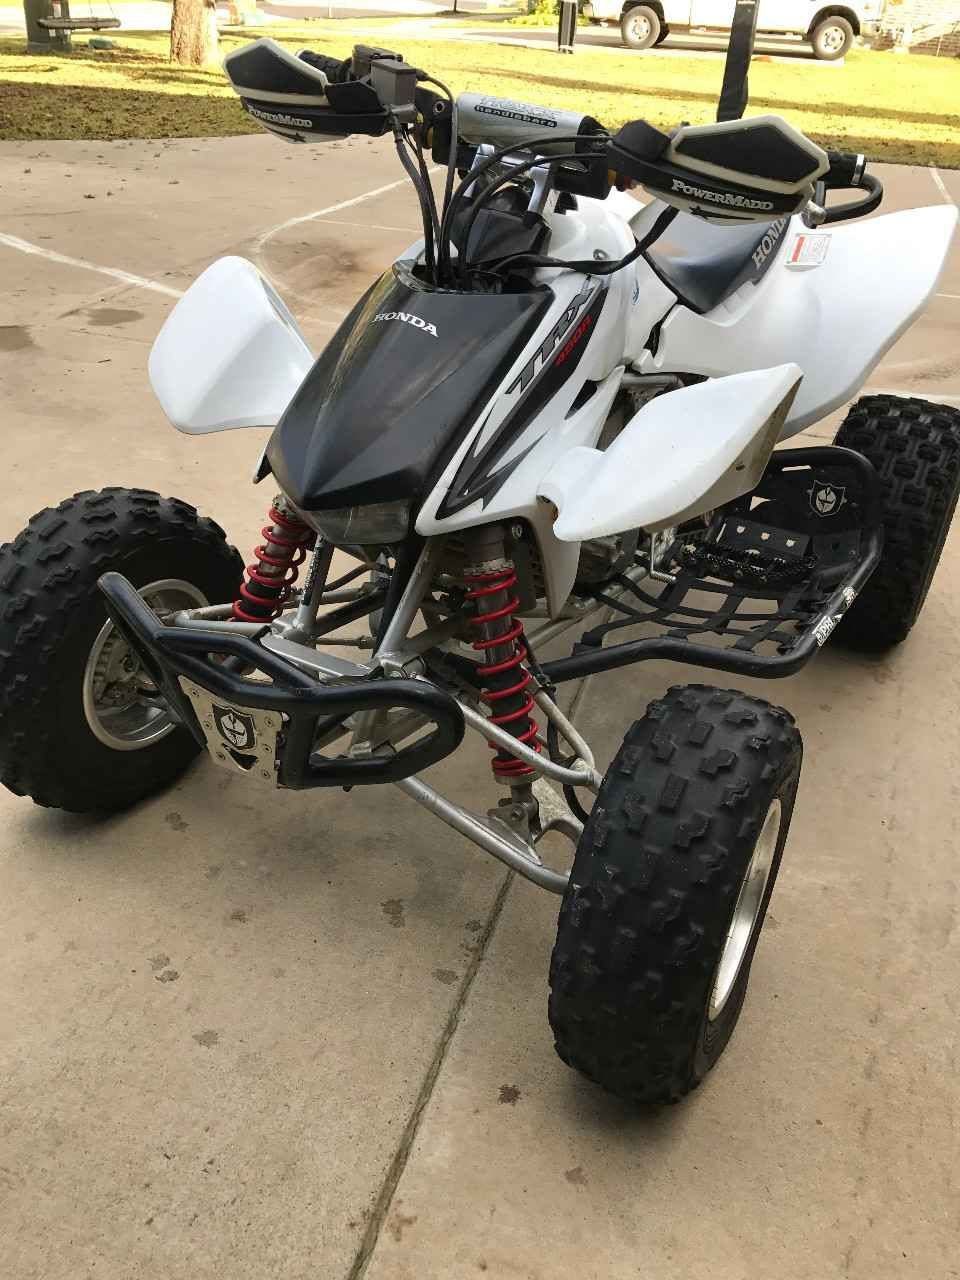 Used 2008 Honda TRX 450R ATVs For Sale in Texas. 2008 Honda TRX450, very  clean, very well maintained,runs very strong and fast! Many upgrades as  seen in the ...